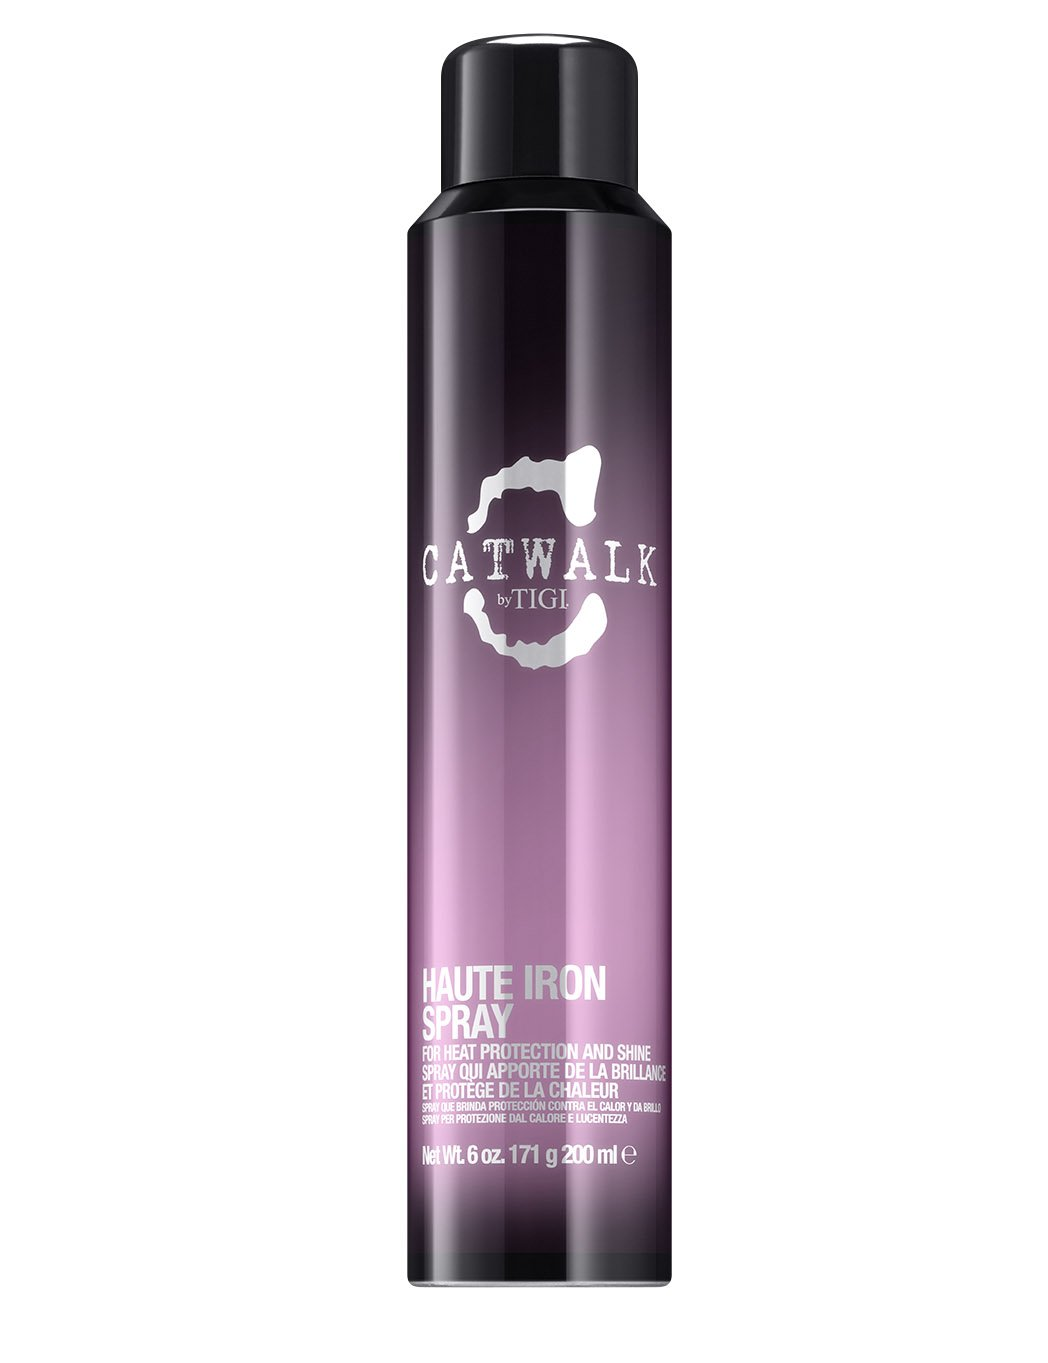 Tigi Catwalk Haute Iron Spray 200 ml by TIGI 8680 51442